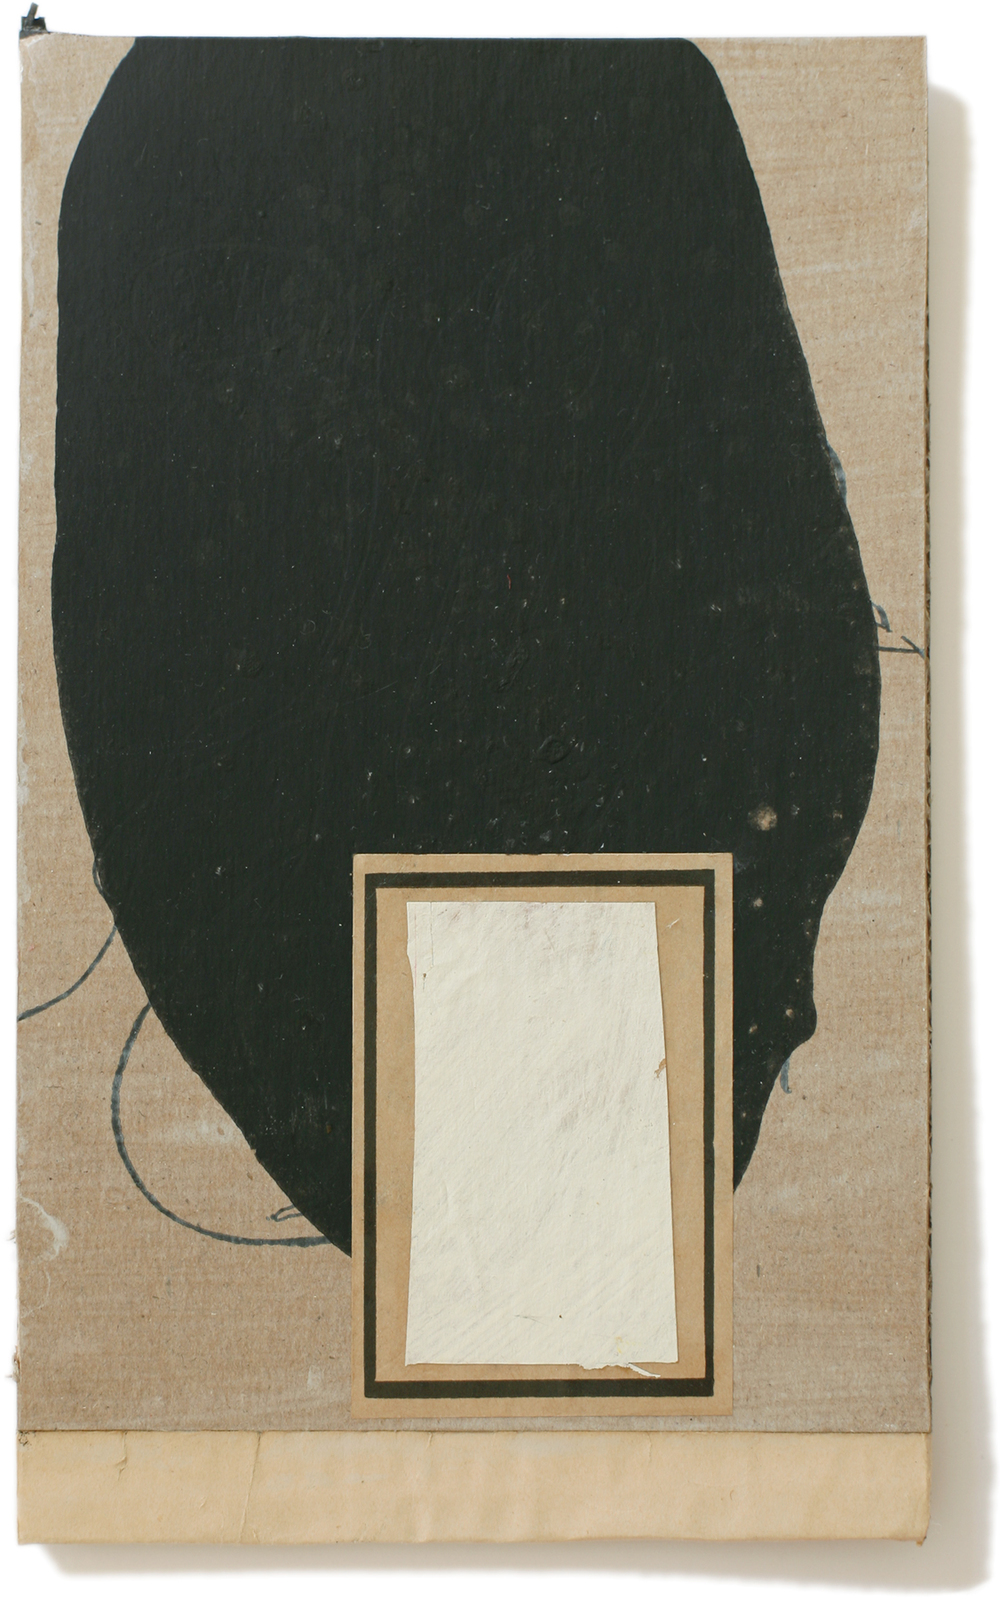 "Doorway, 10"" x 6"", 2011 (private collection)"